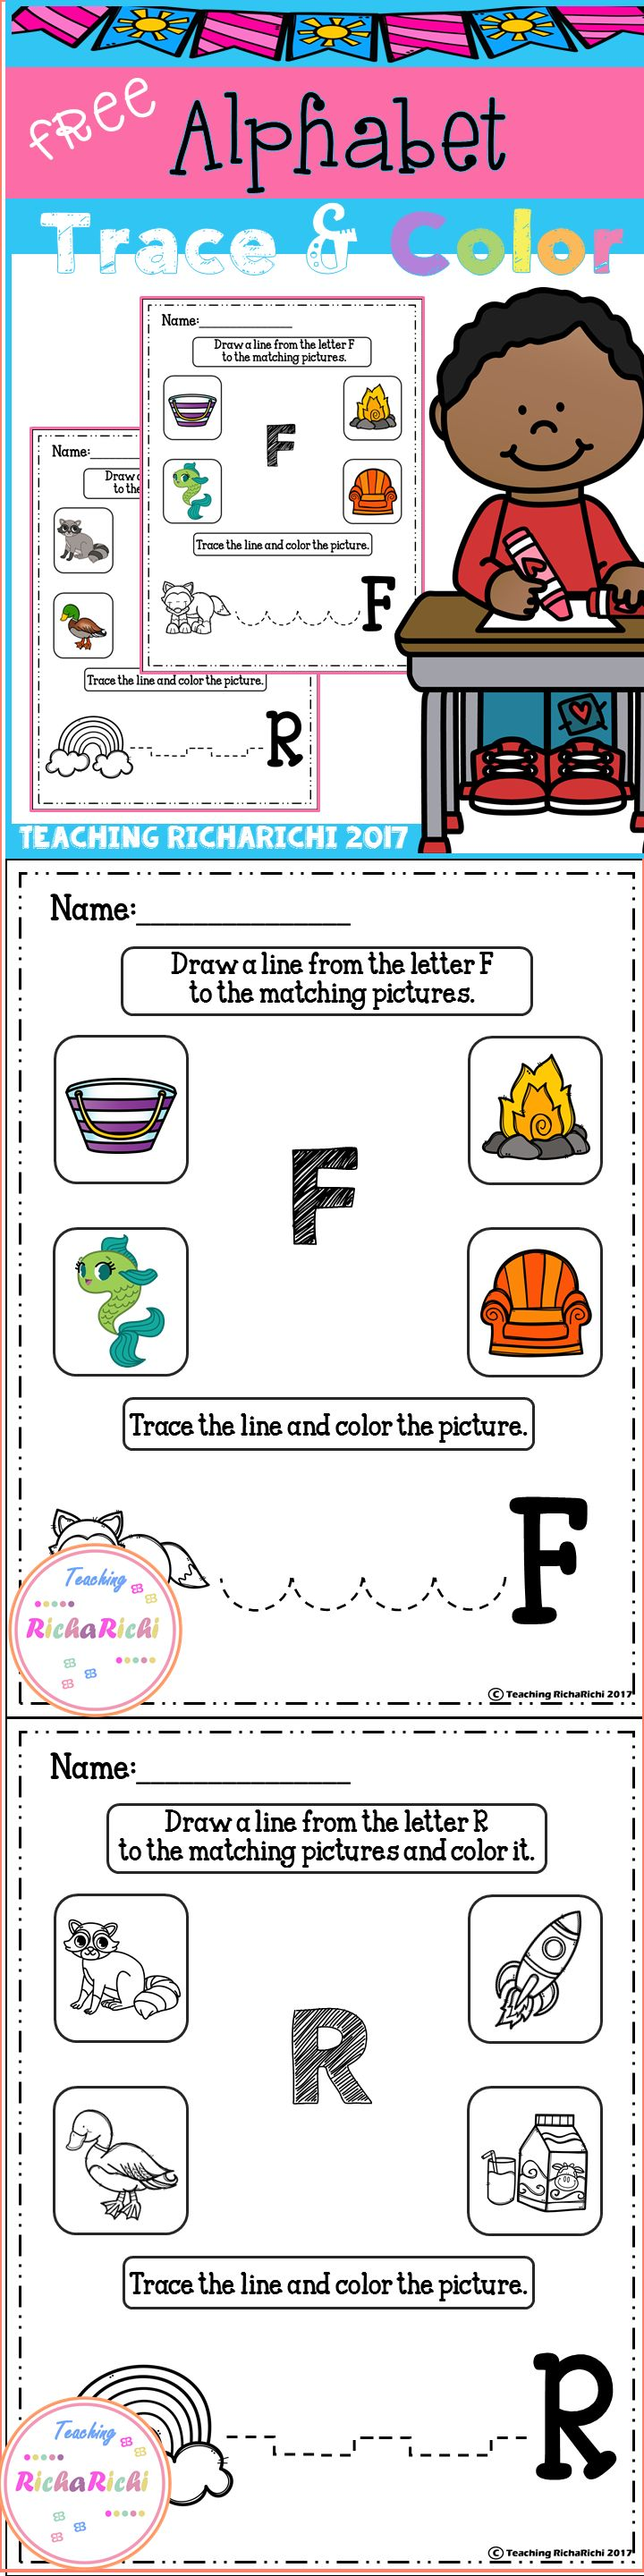 worksheet Free Printable Kindergarten Sight Word Worksheets 1000 ideas about kindergarten sight word worksheets on pinterest freebies free activities pre k first grade activities